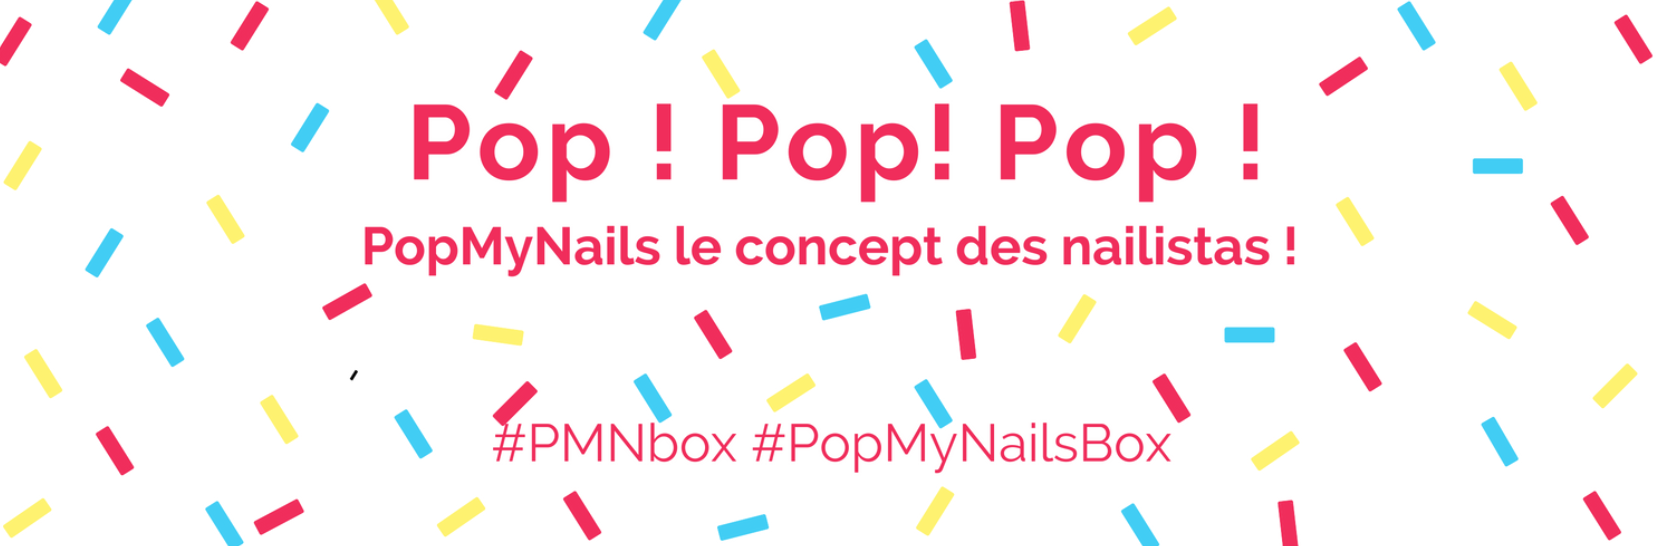 popmynails-makeupbyazadig-box-beaute-vernis-nails-troyes-paris-revue-avis-prix-facebook